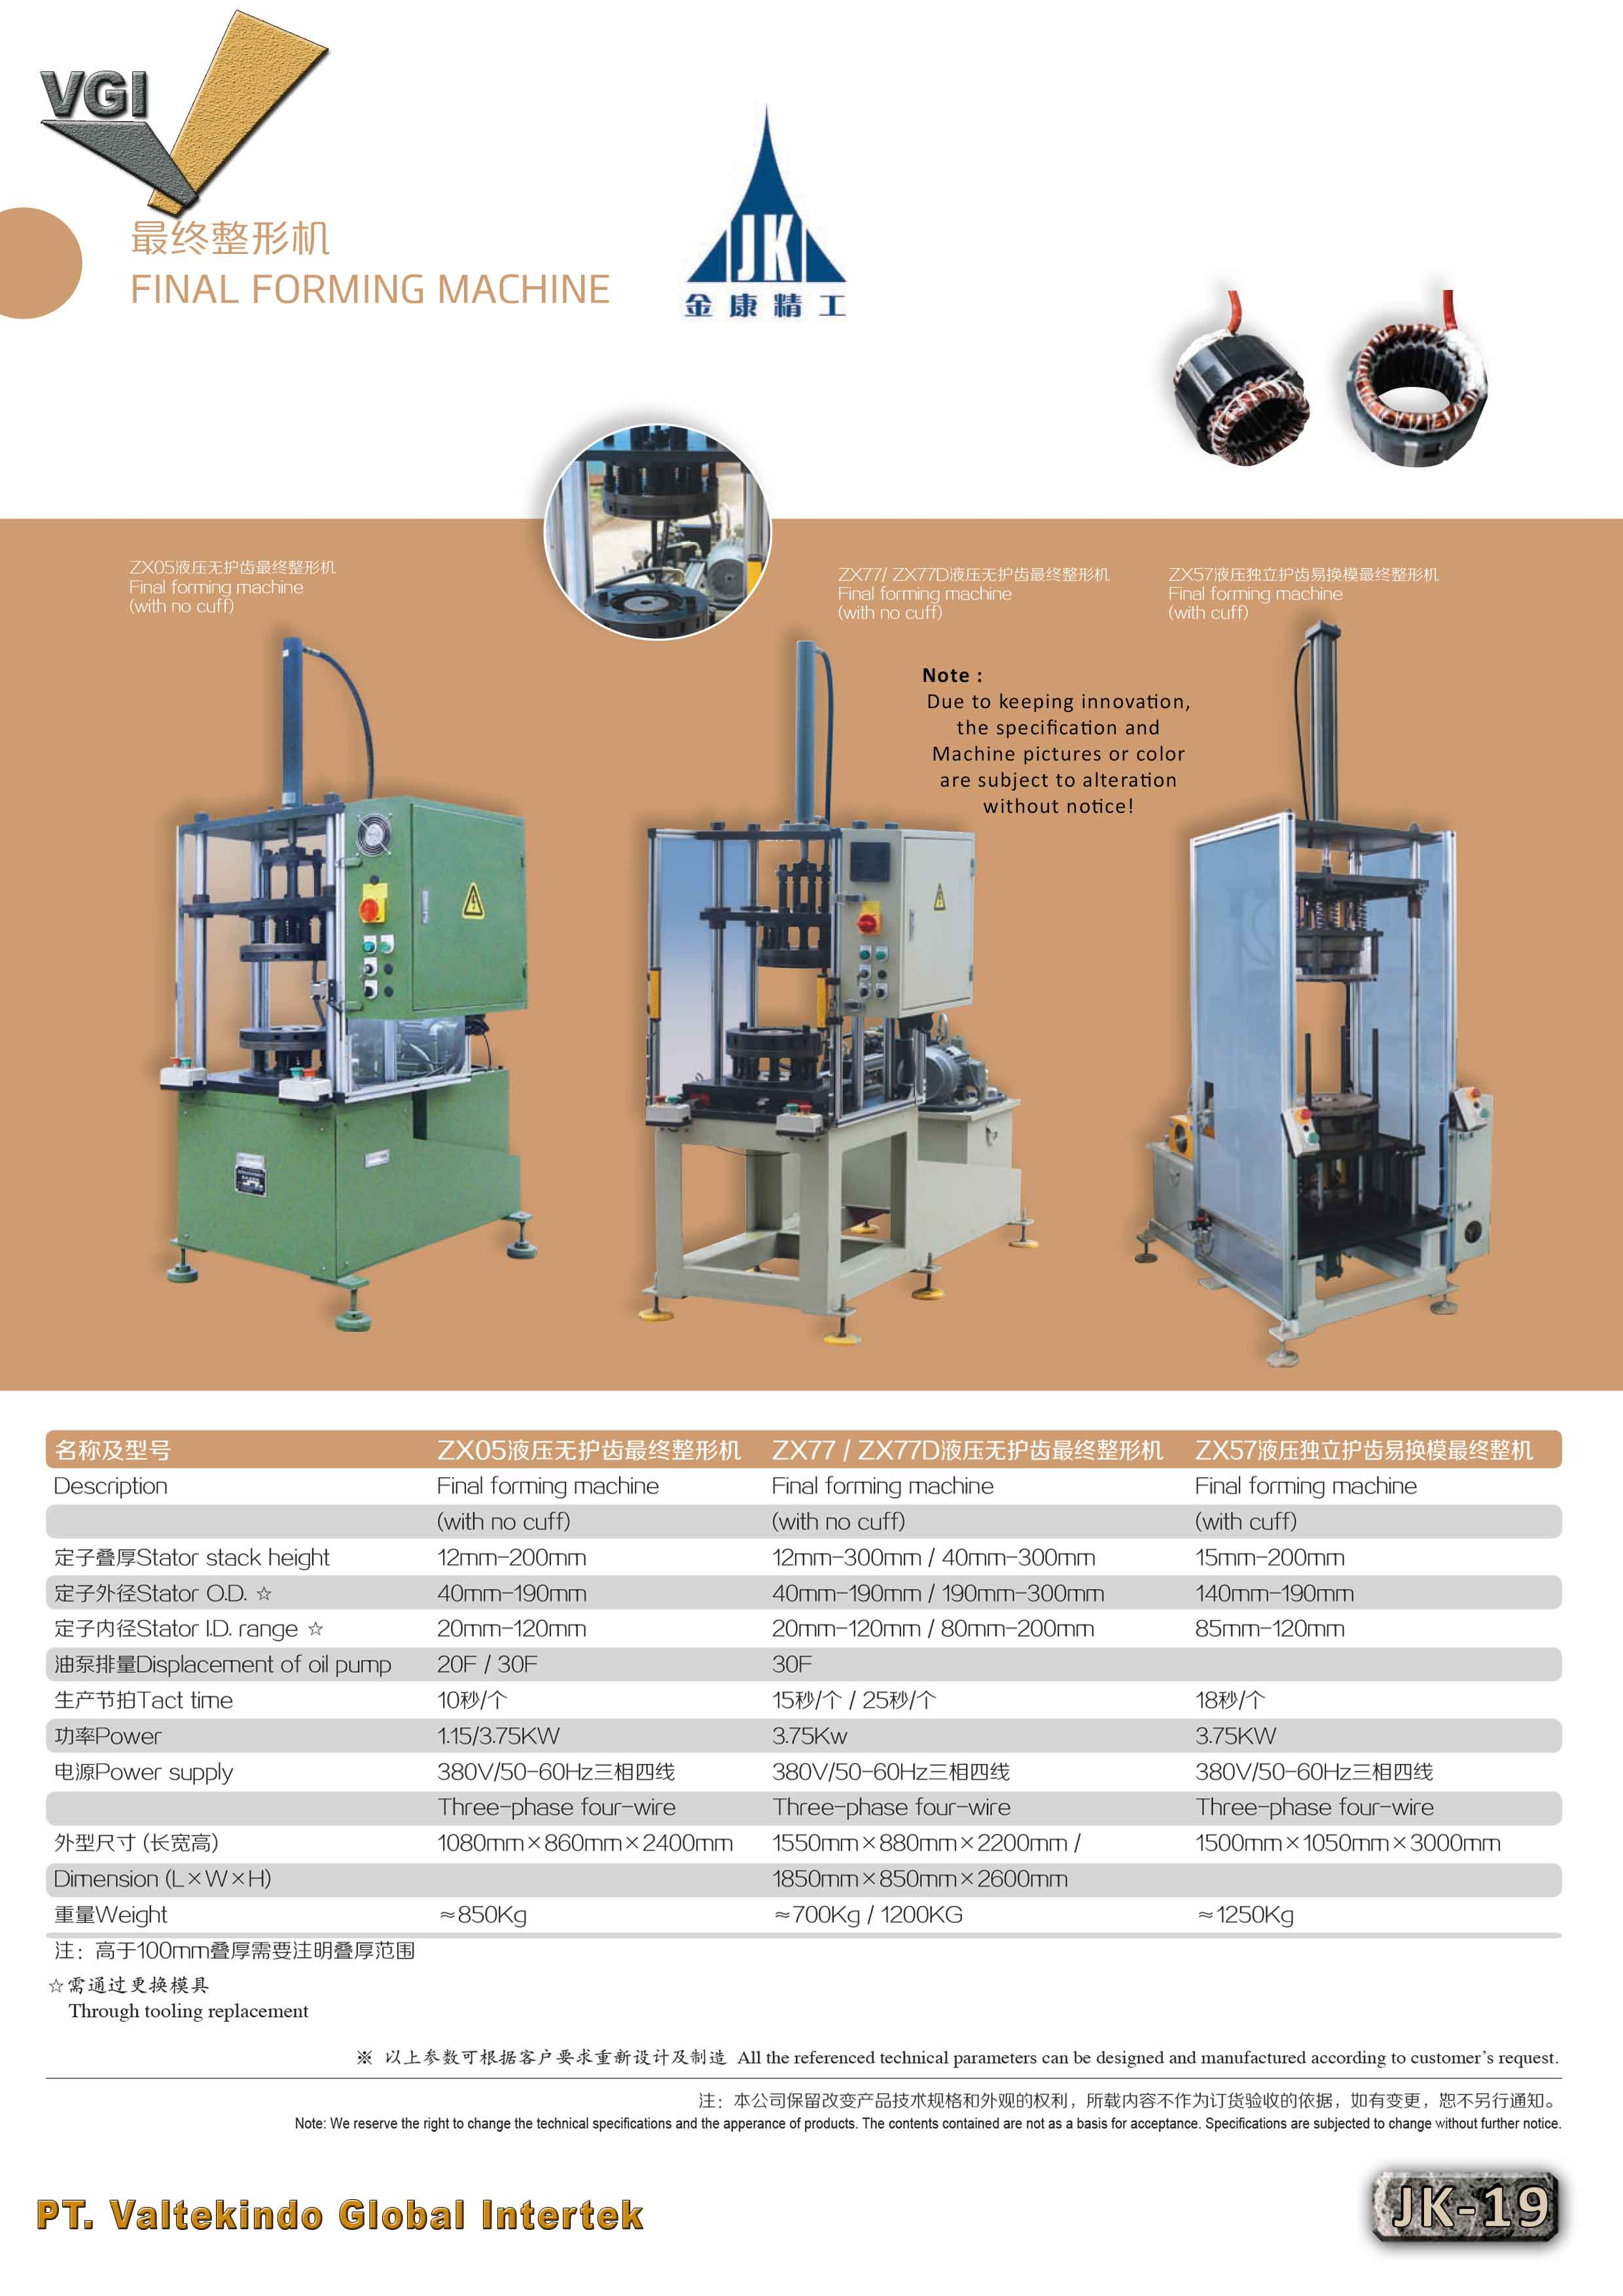 jual mesin Final Forming Machine (With No Cuff) Final Forming Machine (With No Cuff)